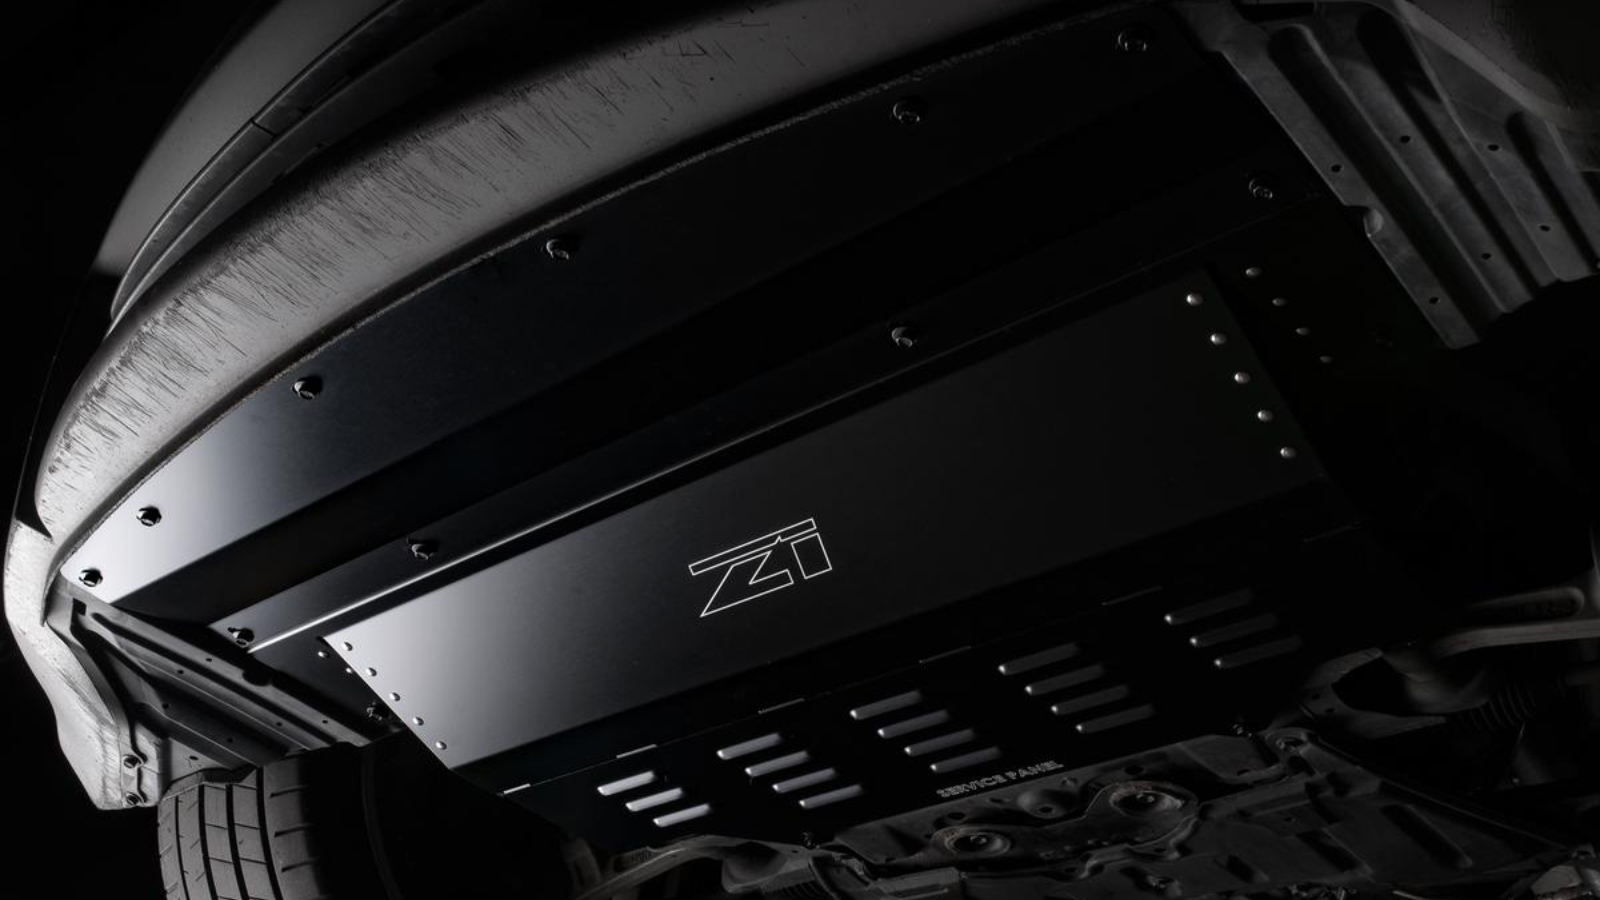 BACK IN BLACK Z1 Aluminum Undershrouds are now available in black anodized finish!